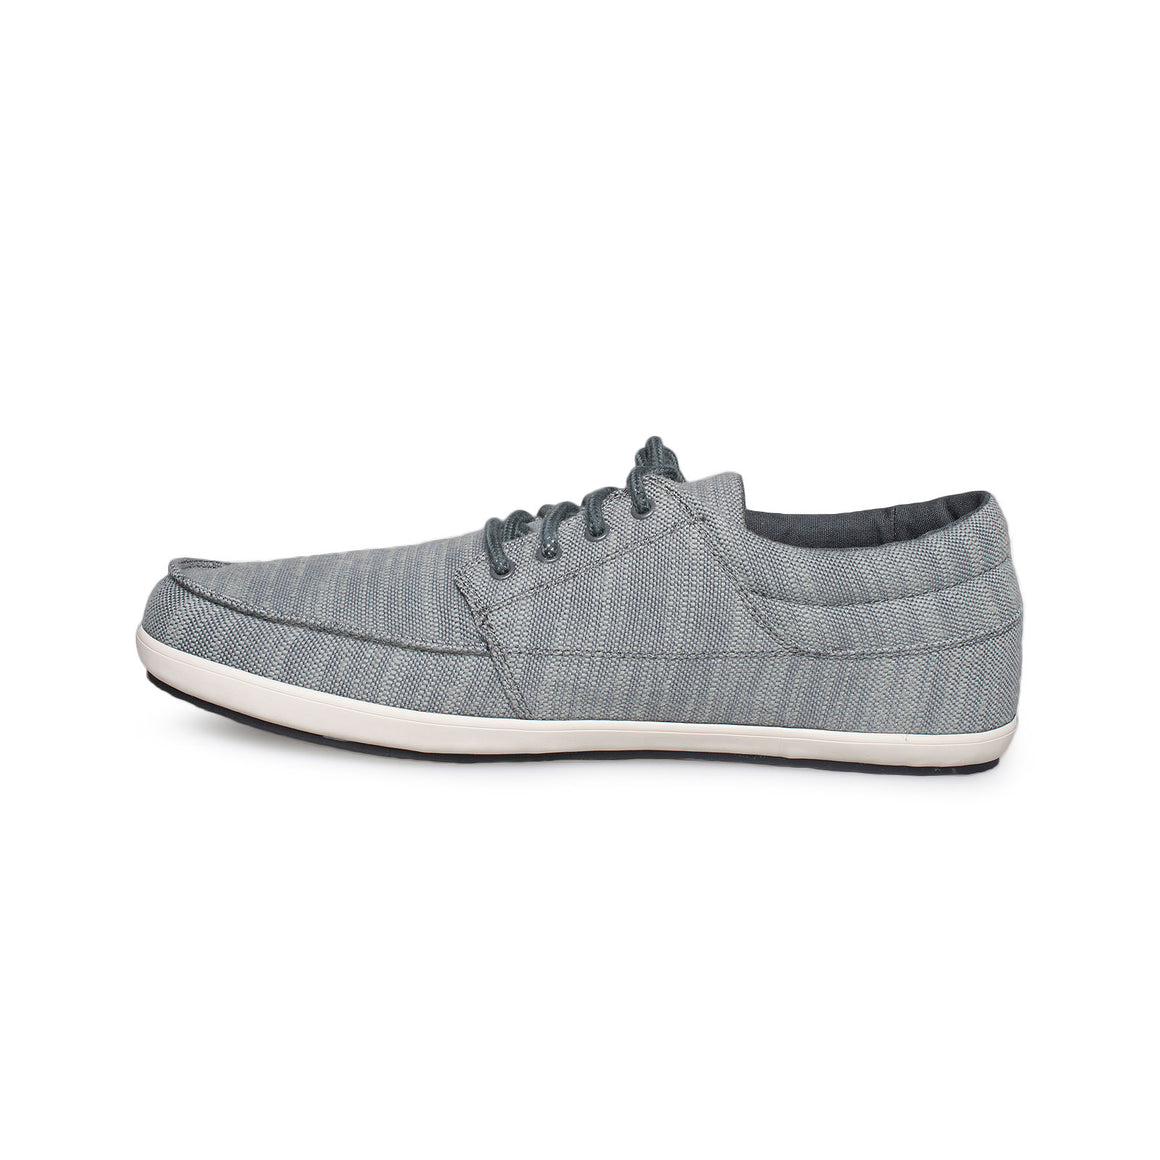 Sanuk TKO Vintage Slub Charcoal Shoes